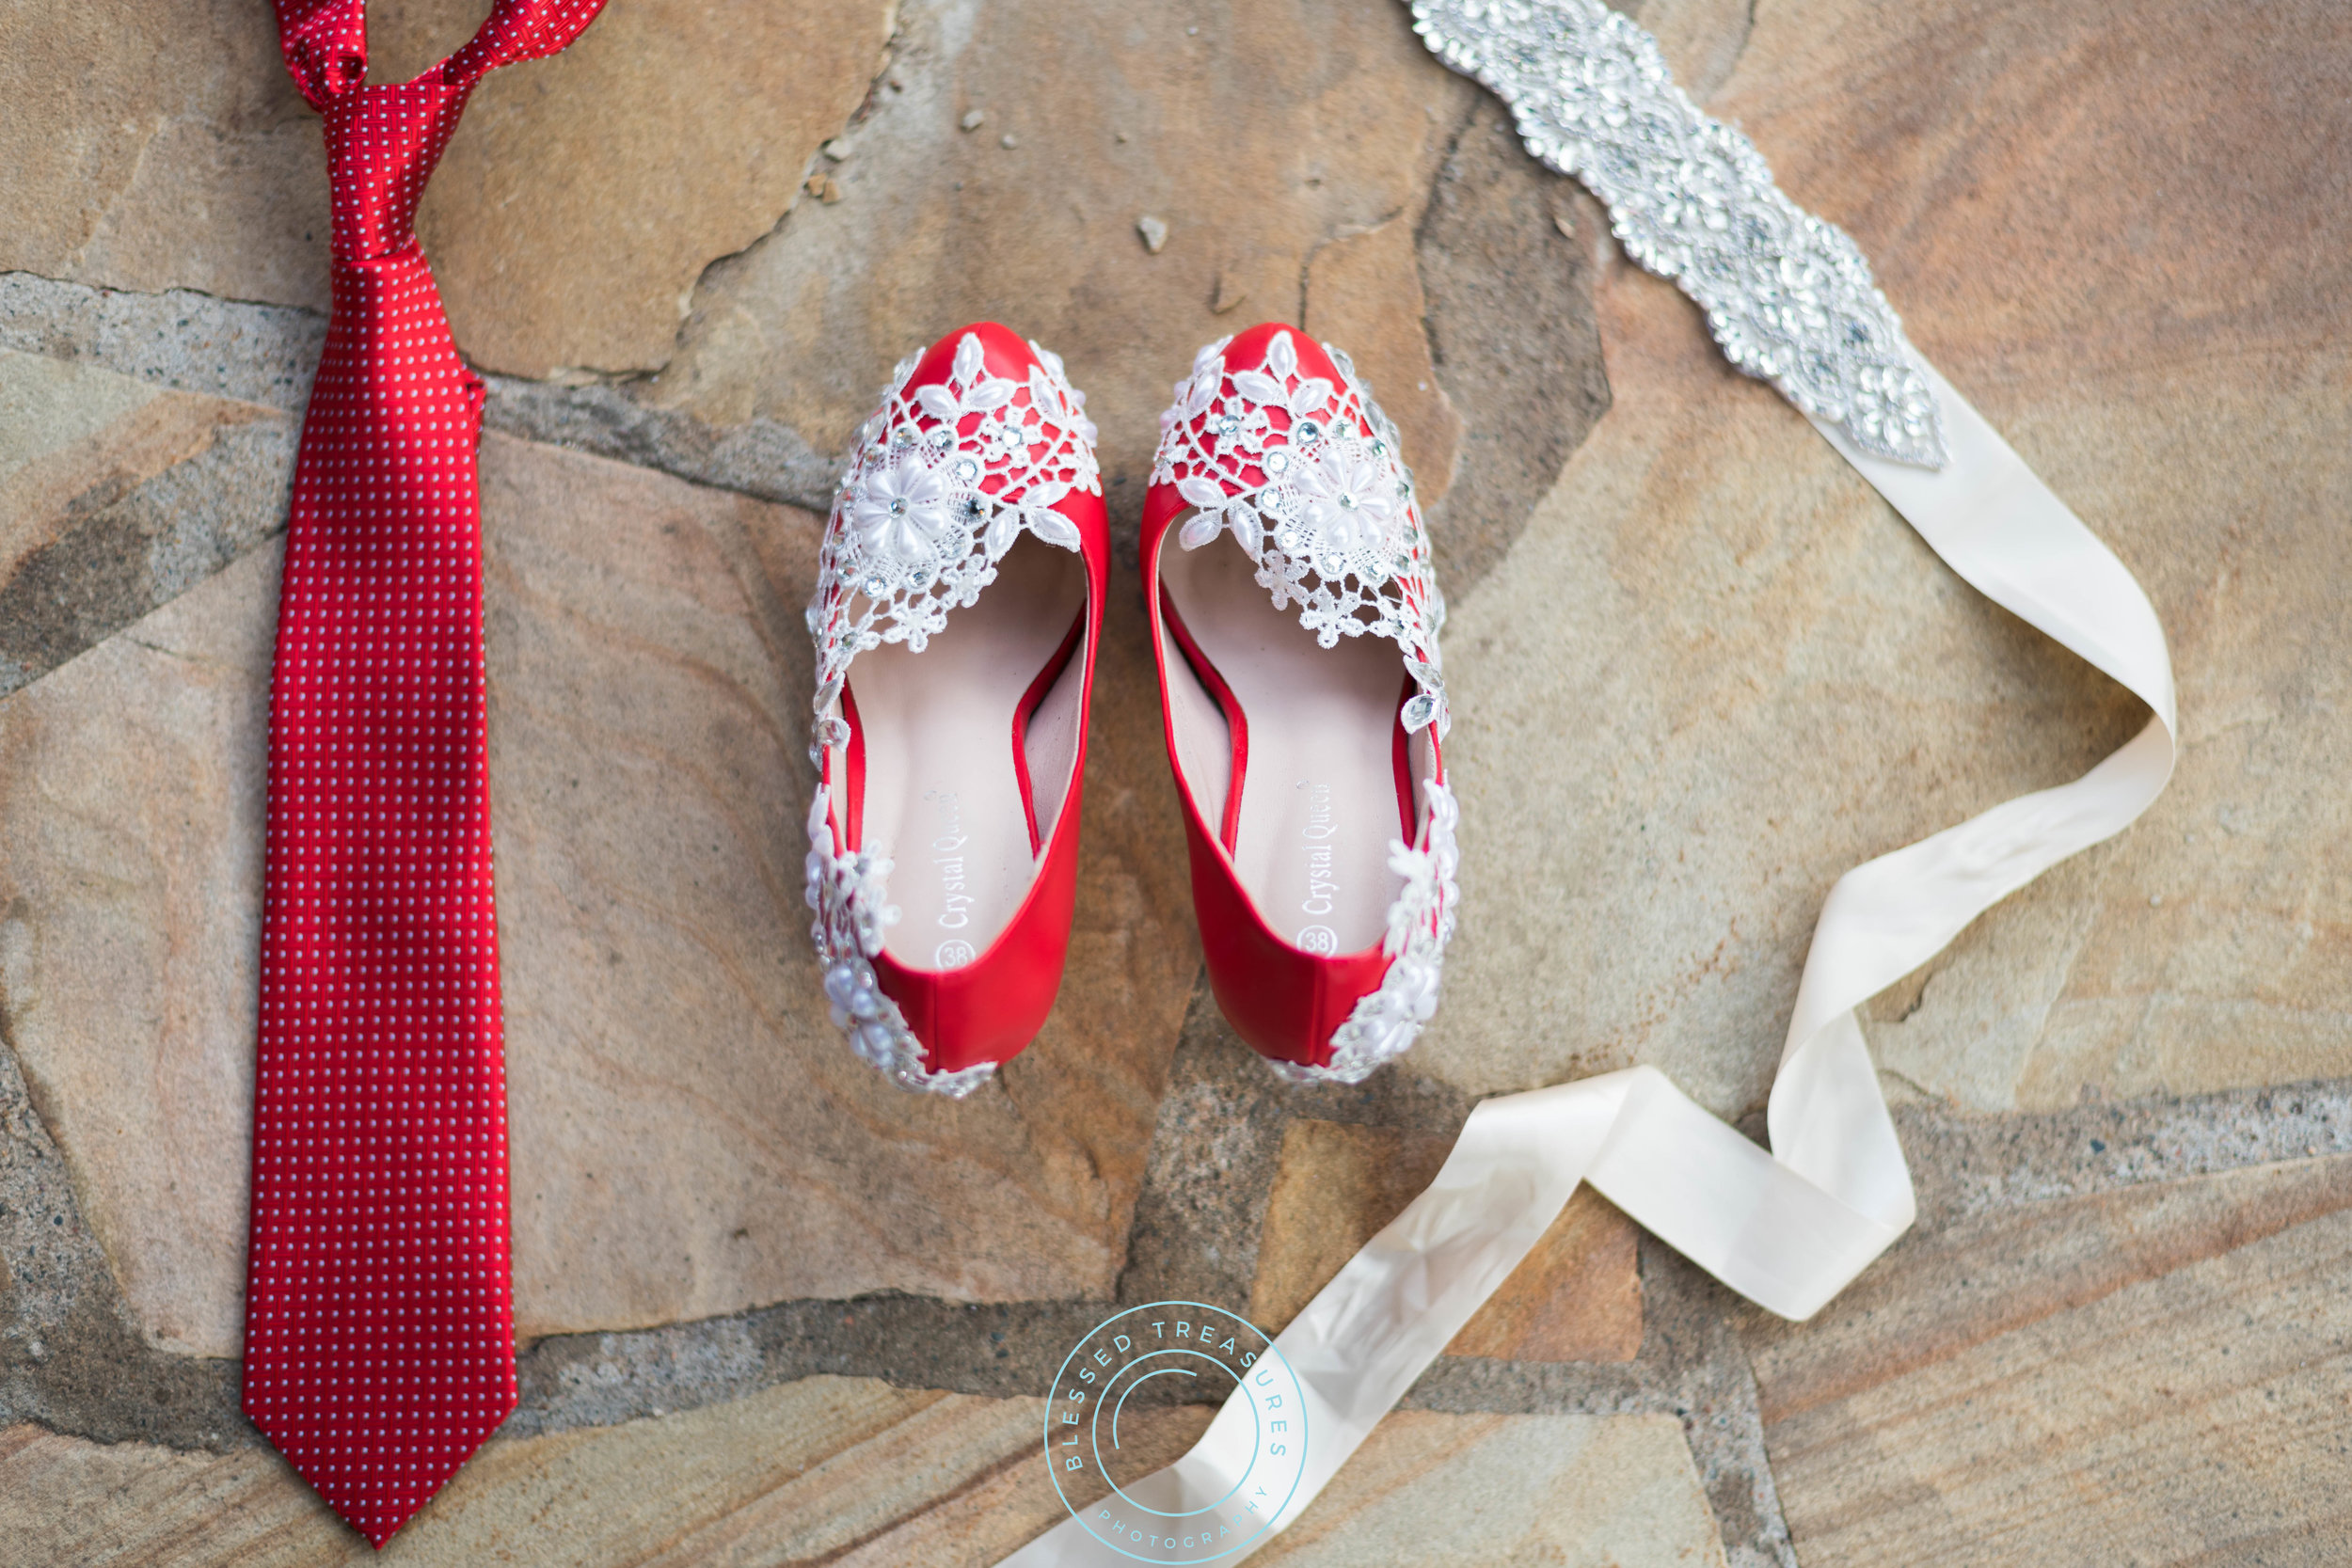 red wedding pumps with lace and beads, red tie, beaded wedding dress sash